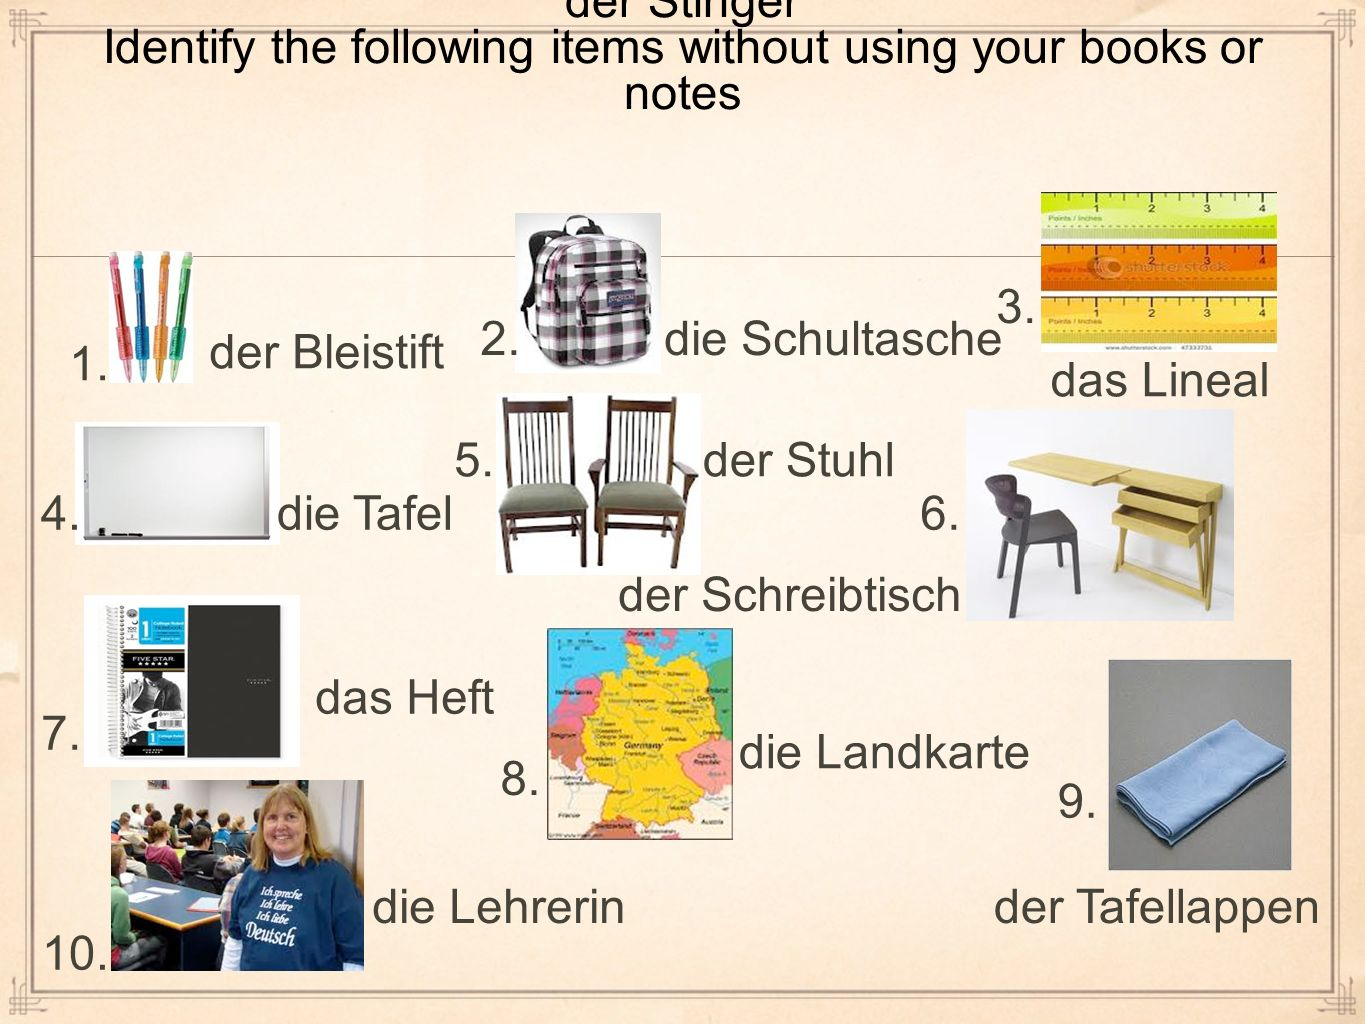 der Stinger Identify the following items without using your books or notes